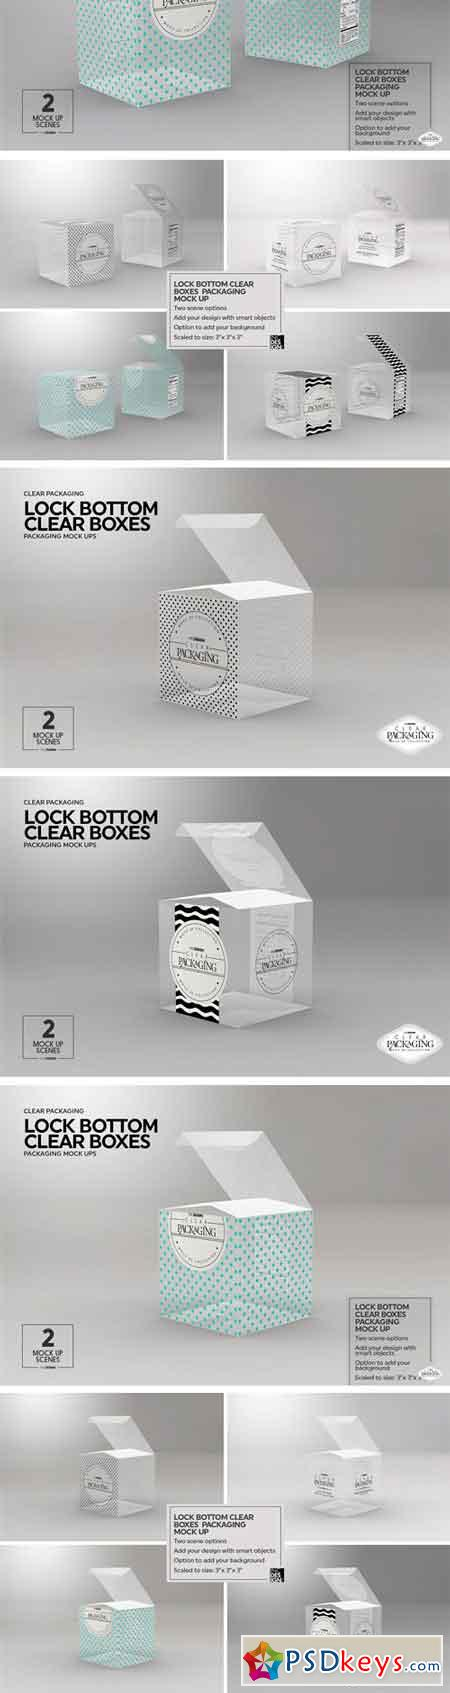 Clear Lock Bottom Boxes MockUp 2221915